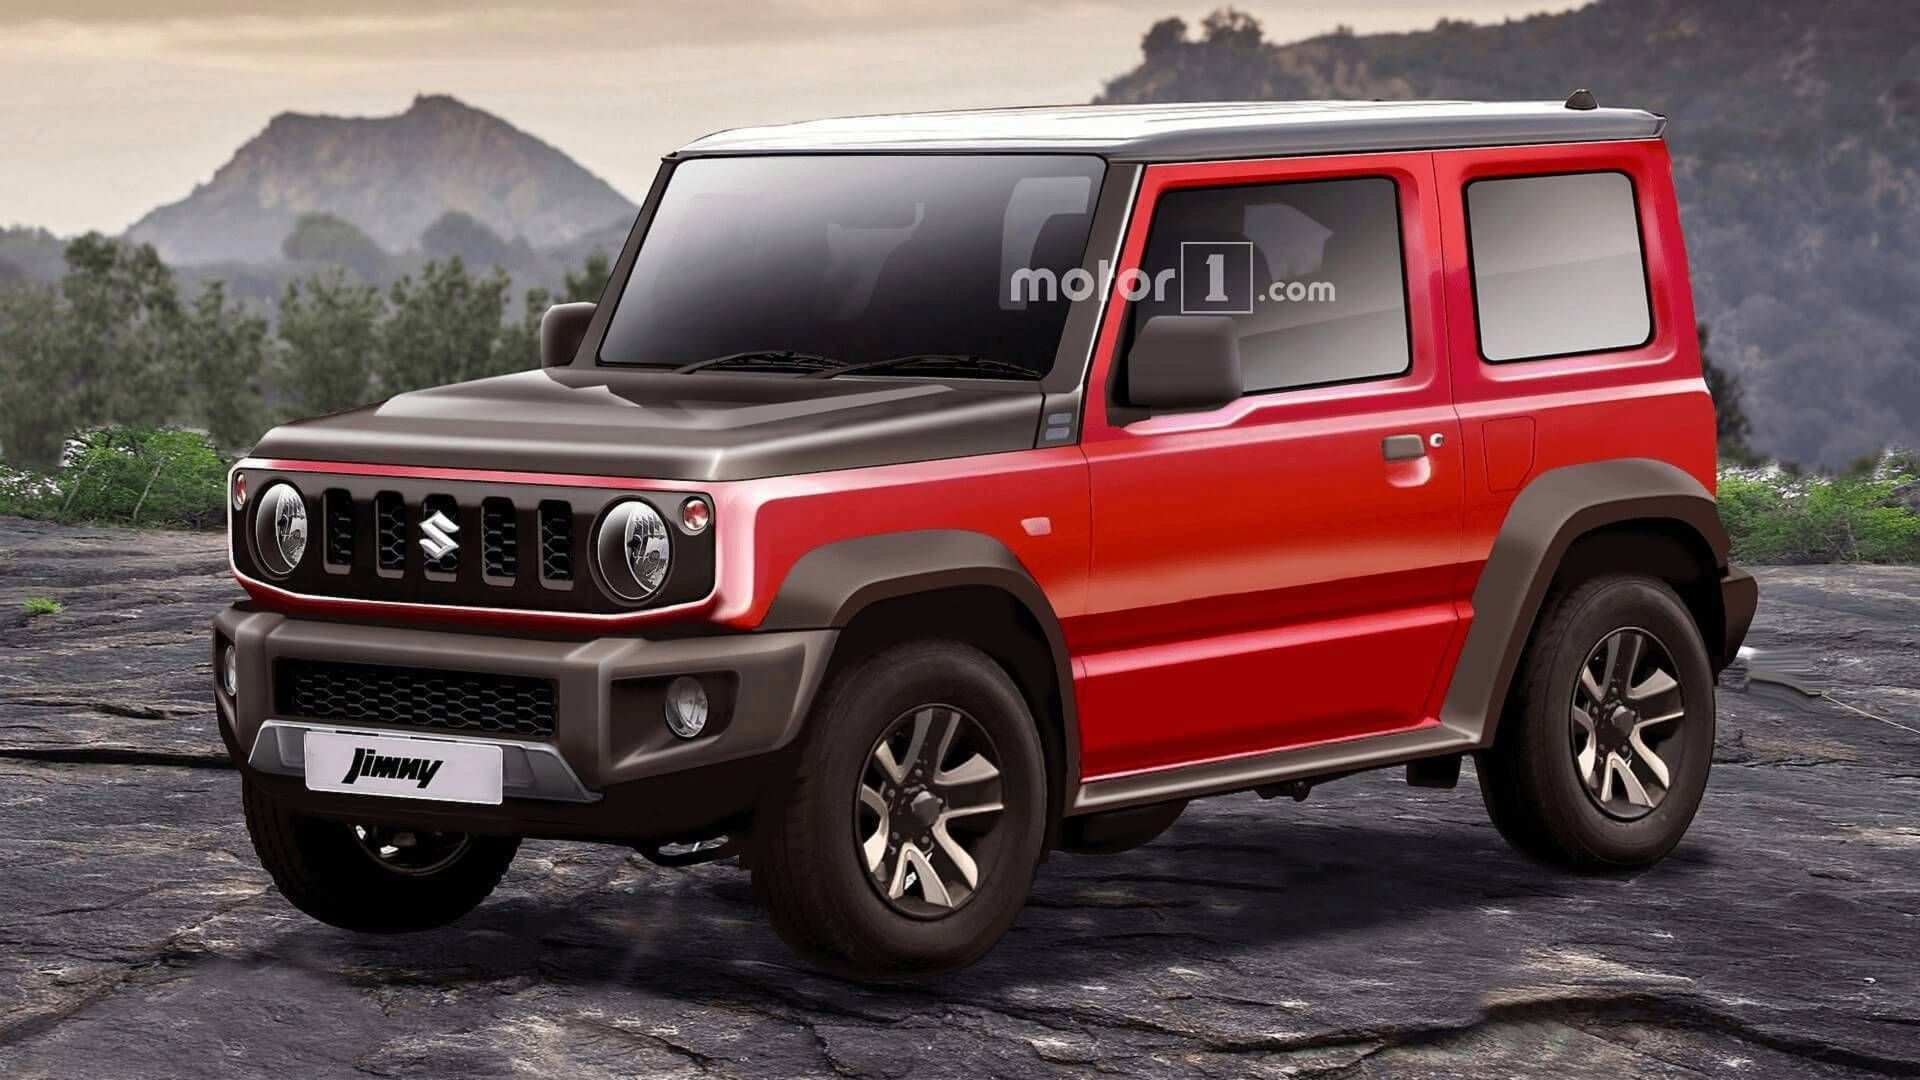 16 The Best 2020 Suzuki Jimny Model Pictures